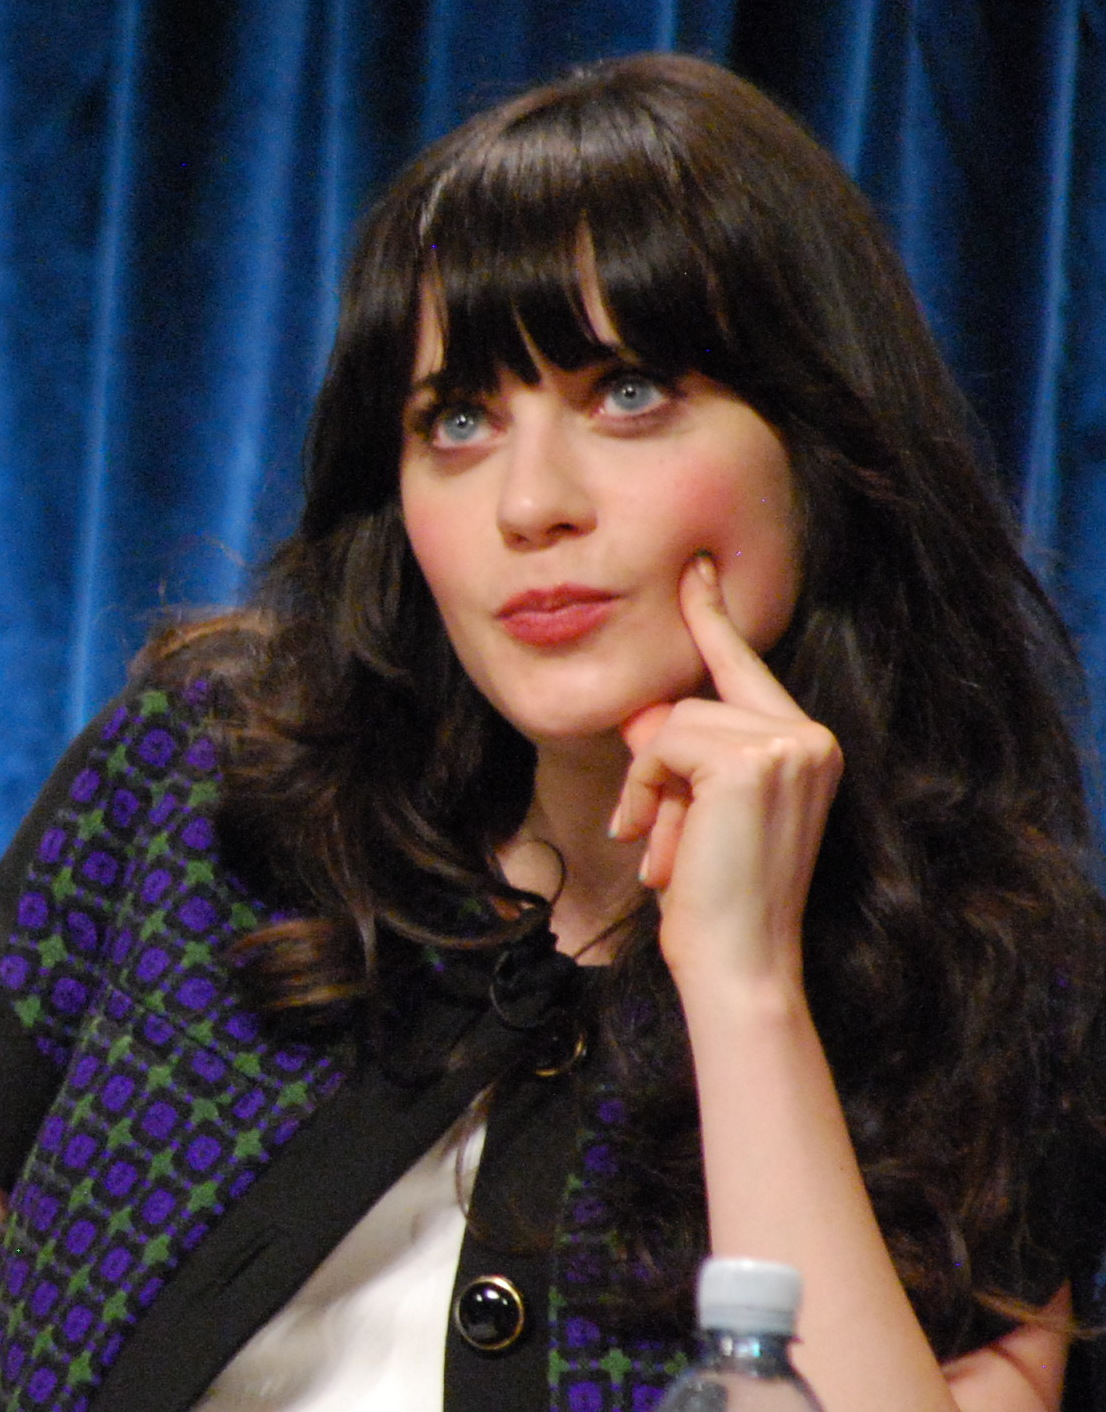 Zooey Deschanel nude photos 2019